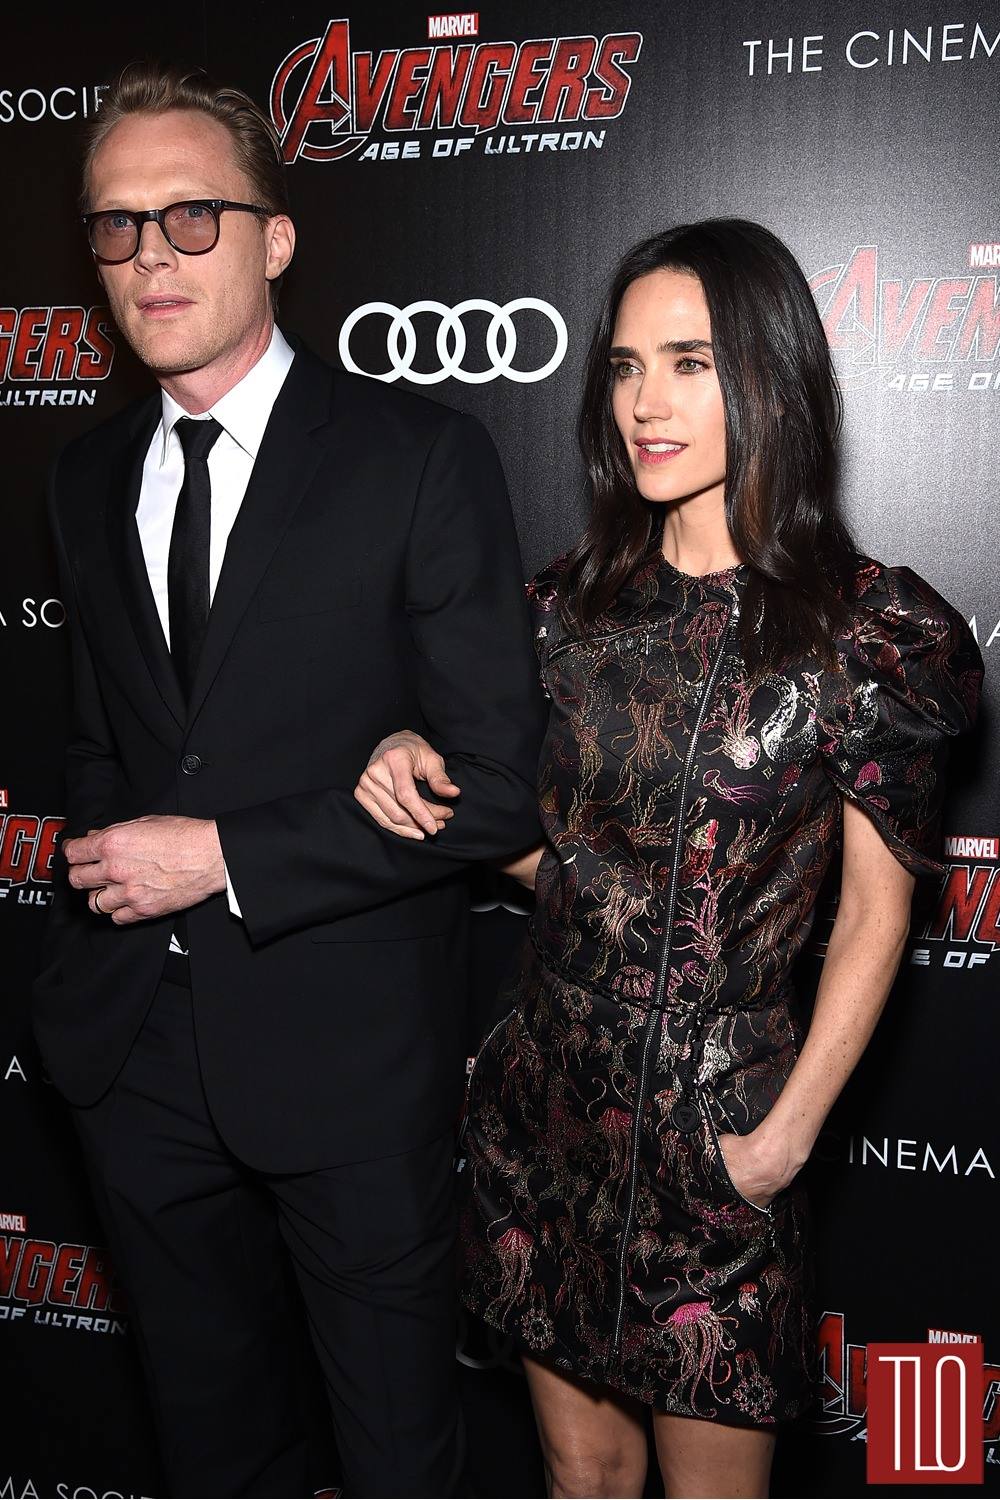 Paul-Bettany-Jennifer-Connelly-Avengers-Age-Ultron-New-York-Screening-Red-Carpet-Fashion-Louis-Vuitton-Tom-Lorenzo-Site-TLO (1)